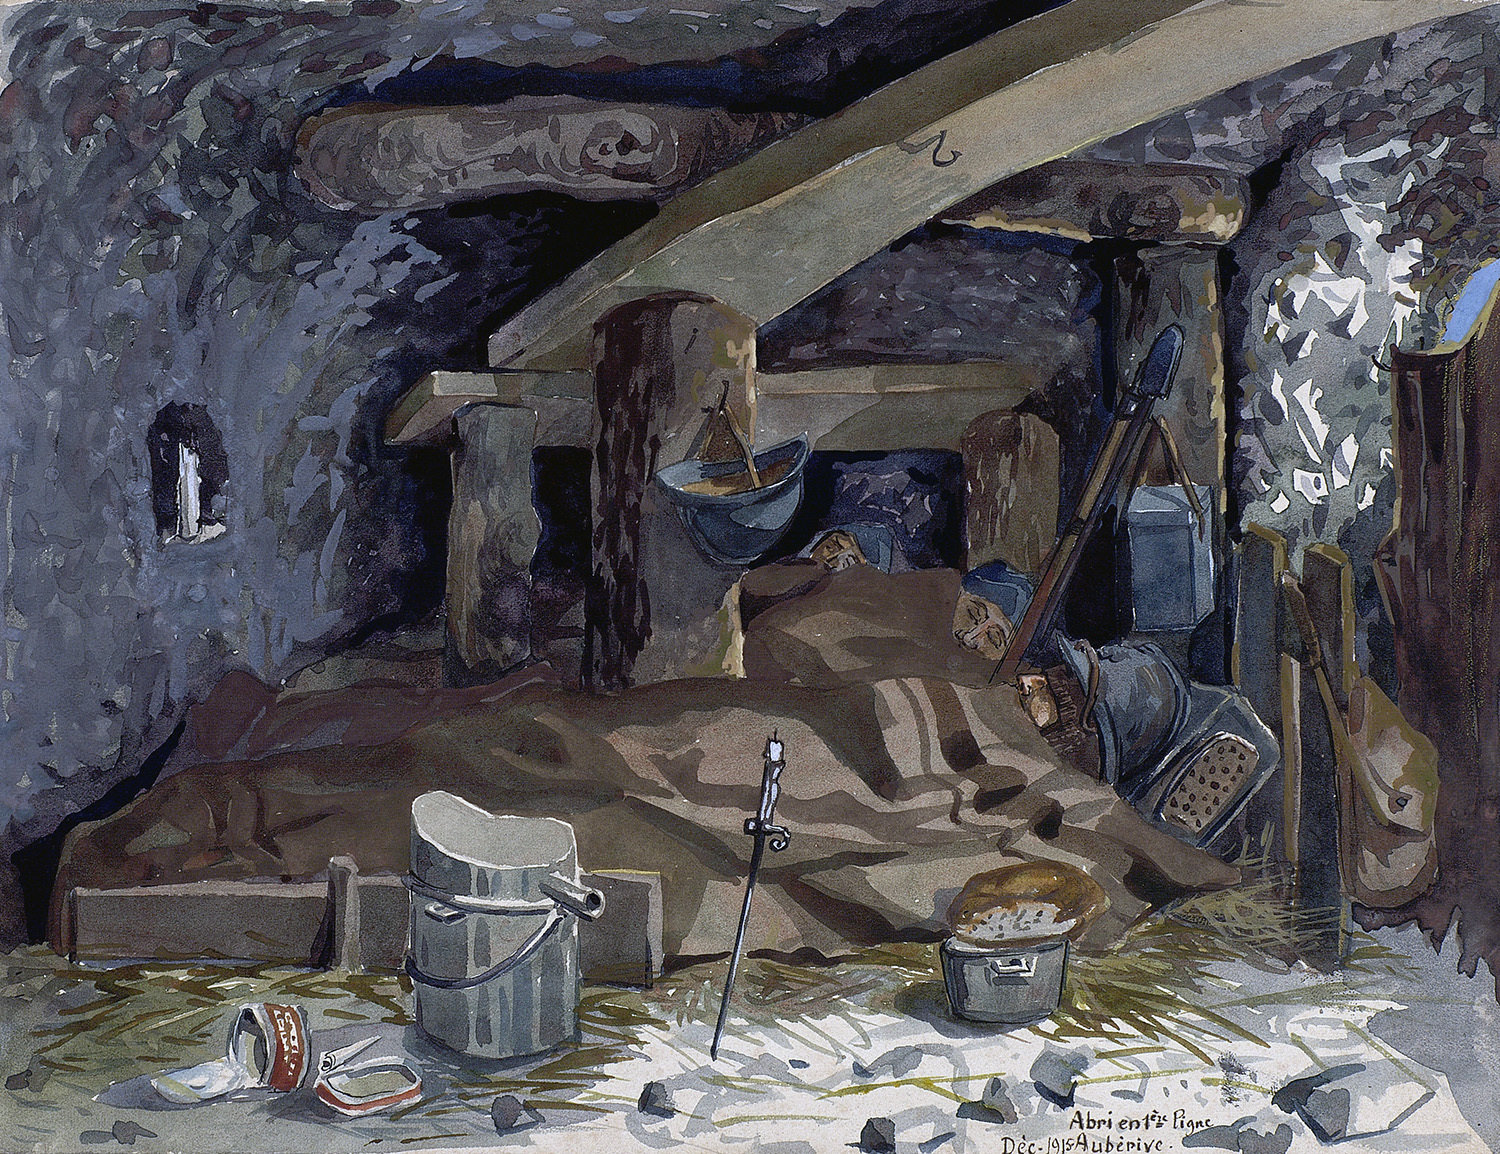 Sleeping soldiers on the Western Front, 1915-1917, Alphonse Robine, Europeana 1914-1918 / Madame Nicole Robine, CC BY-SA